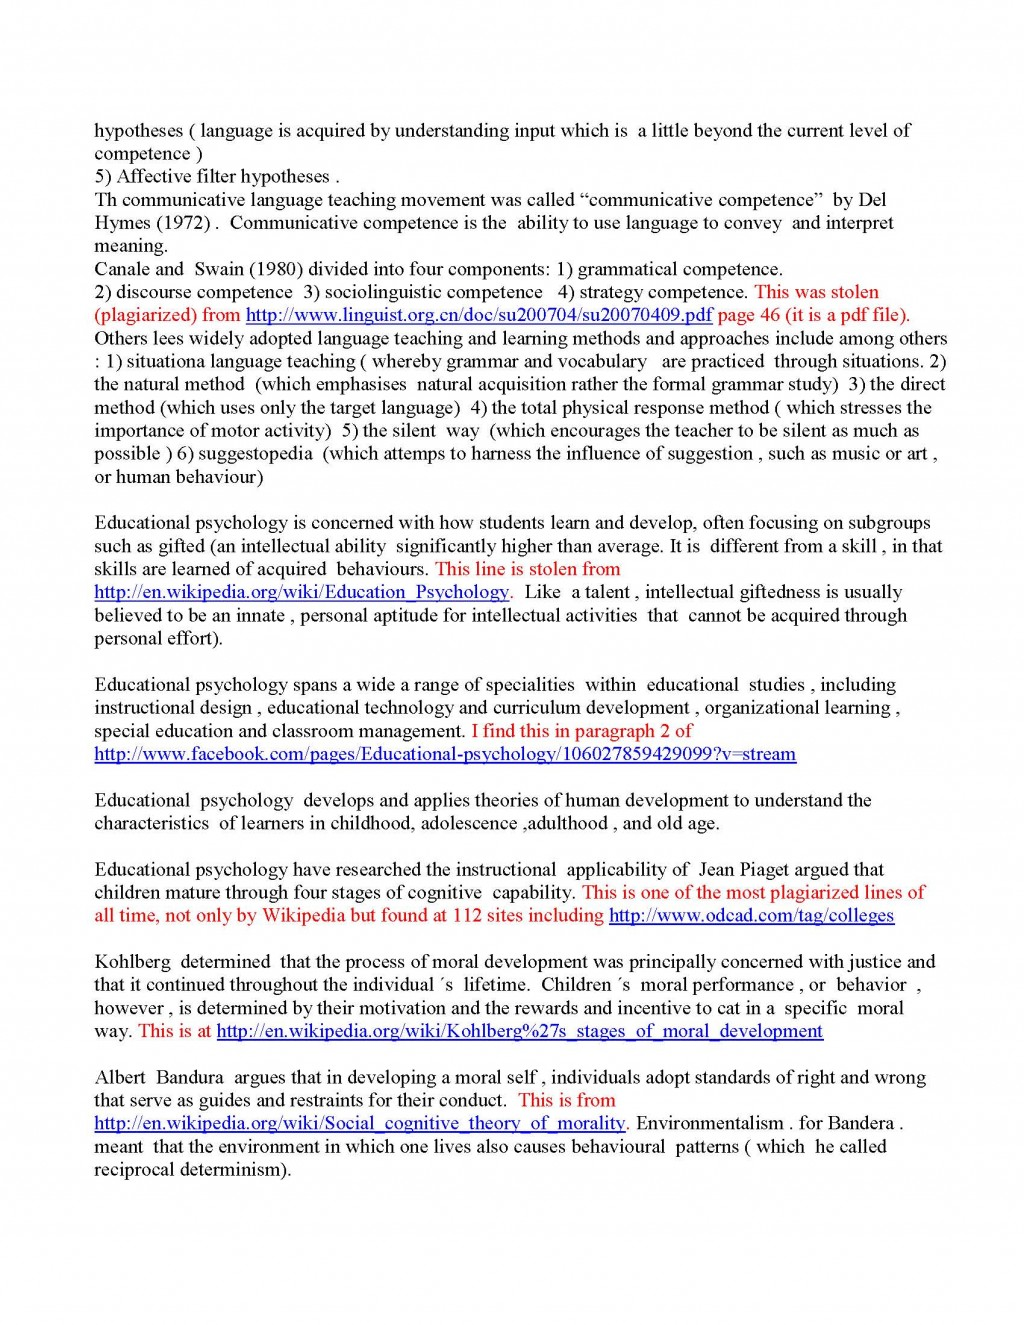 028 Initial Essay Read And Graded Page 2 Checker Shocking Grammatical Free Online Grammar For Teachers Large